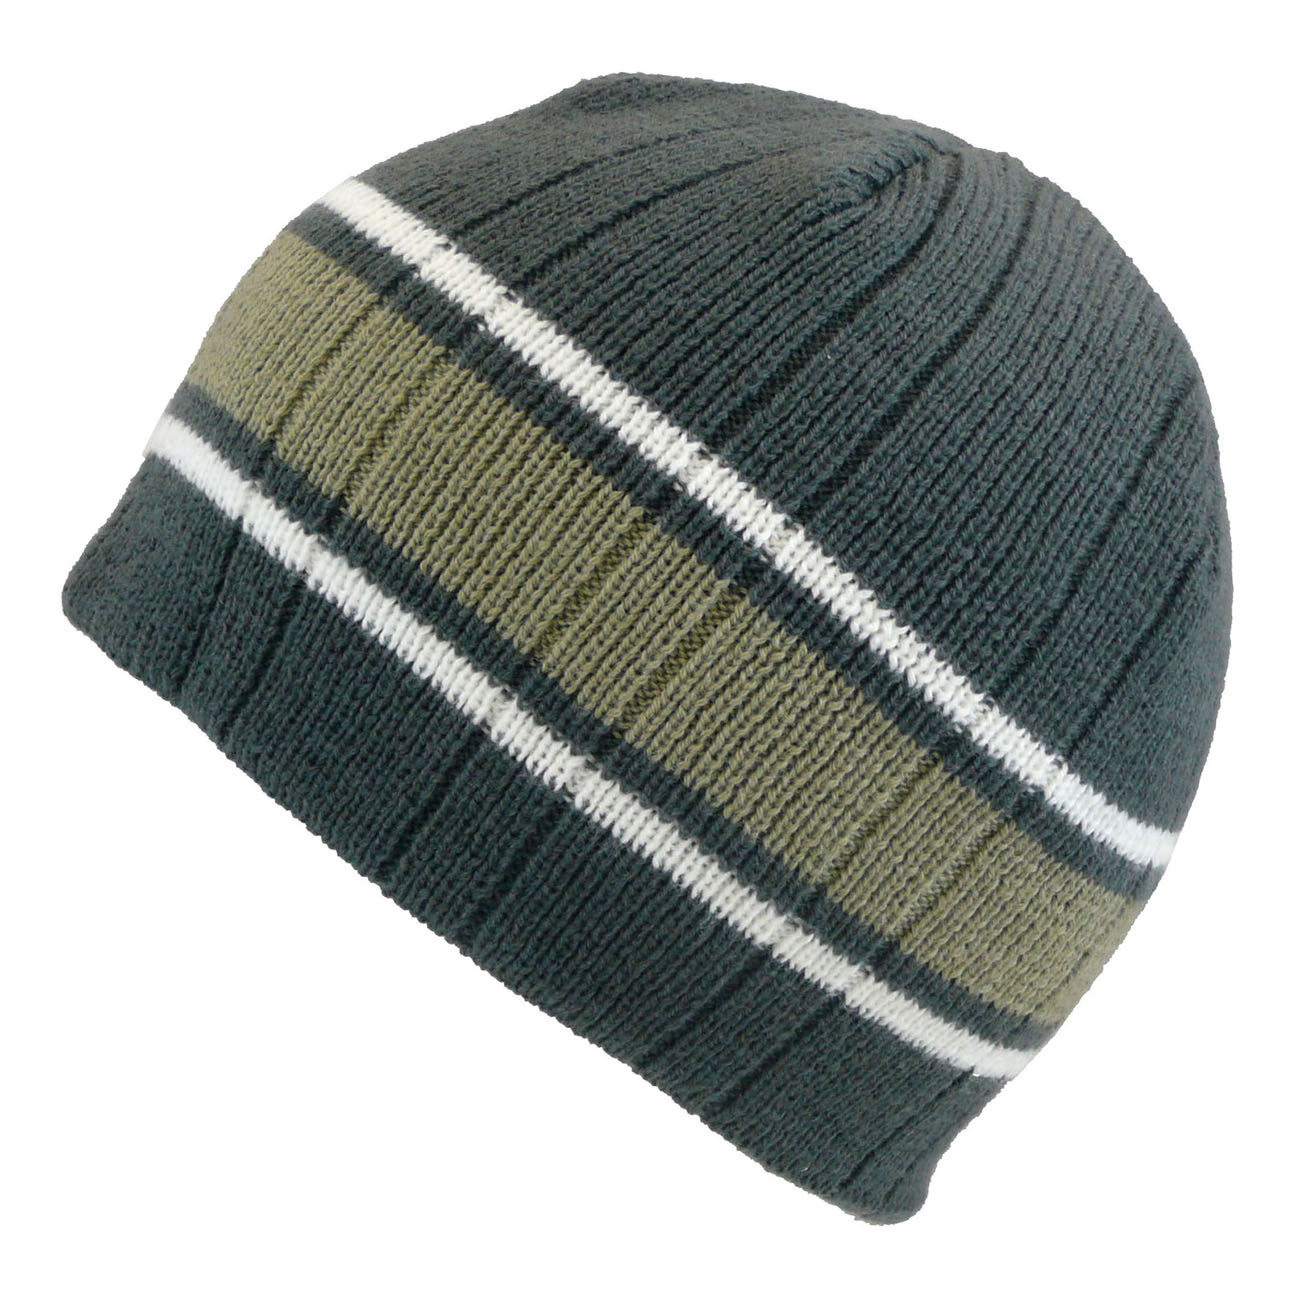 Manbi Winter Headwear Mens Tram Beanie